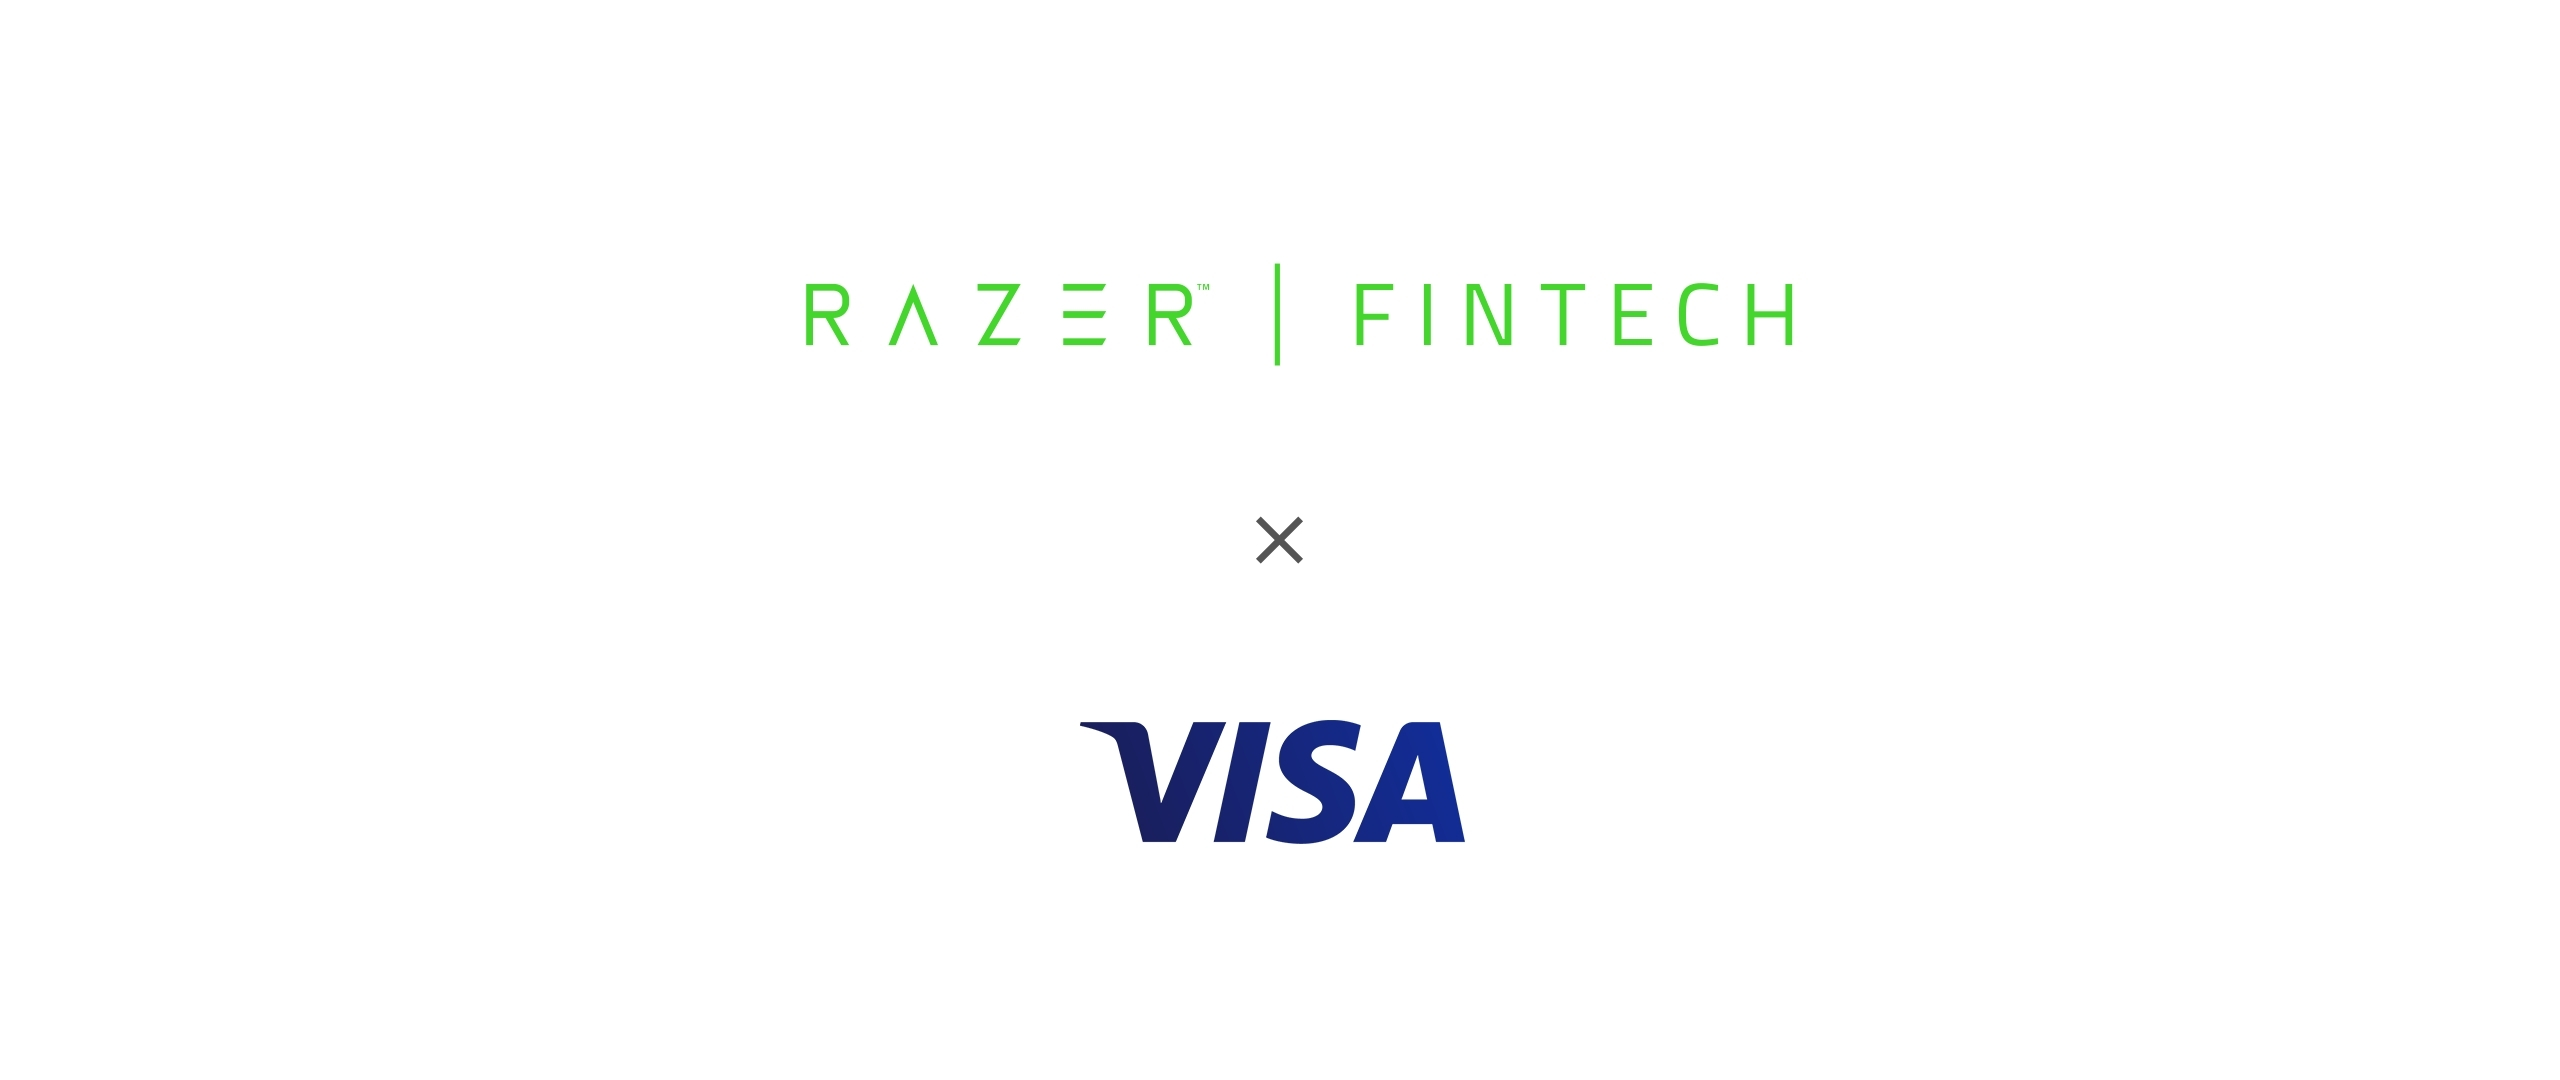 Razer and Visa Announce Partnership to Transform Payments in